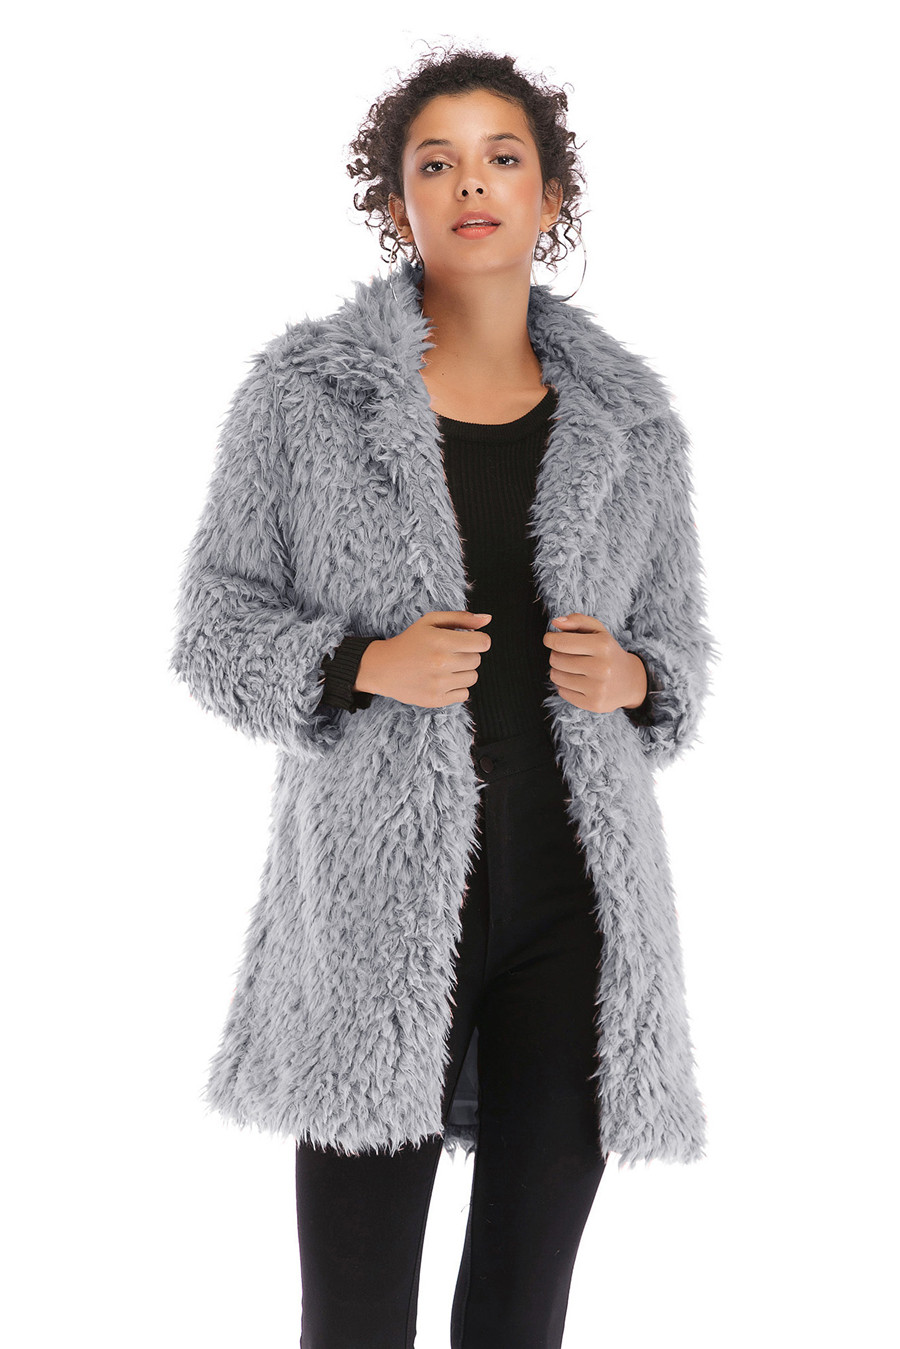 Gladiolus 2018 Women Autumn Winter Coat Turn-Down Collar Long Sleeve Covered Button Long Warm Shaggy Faux Fur Coat Women Jackets (16)